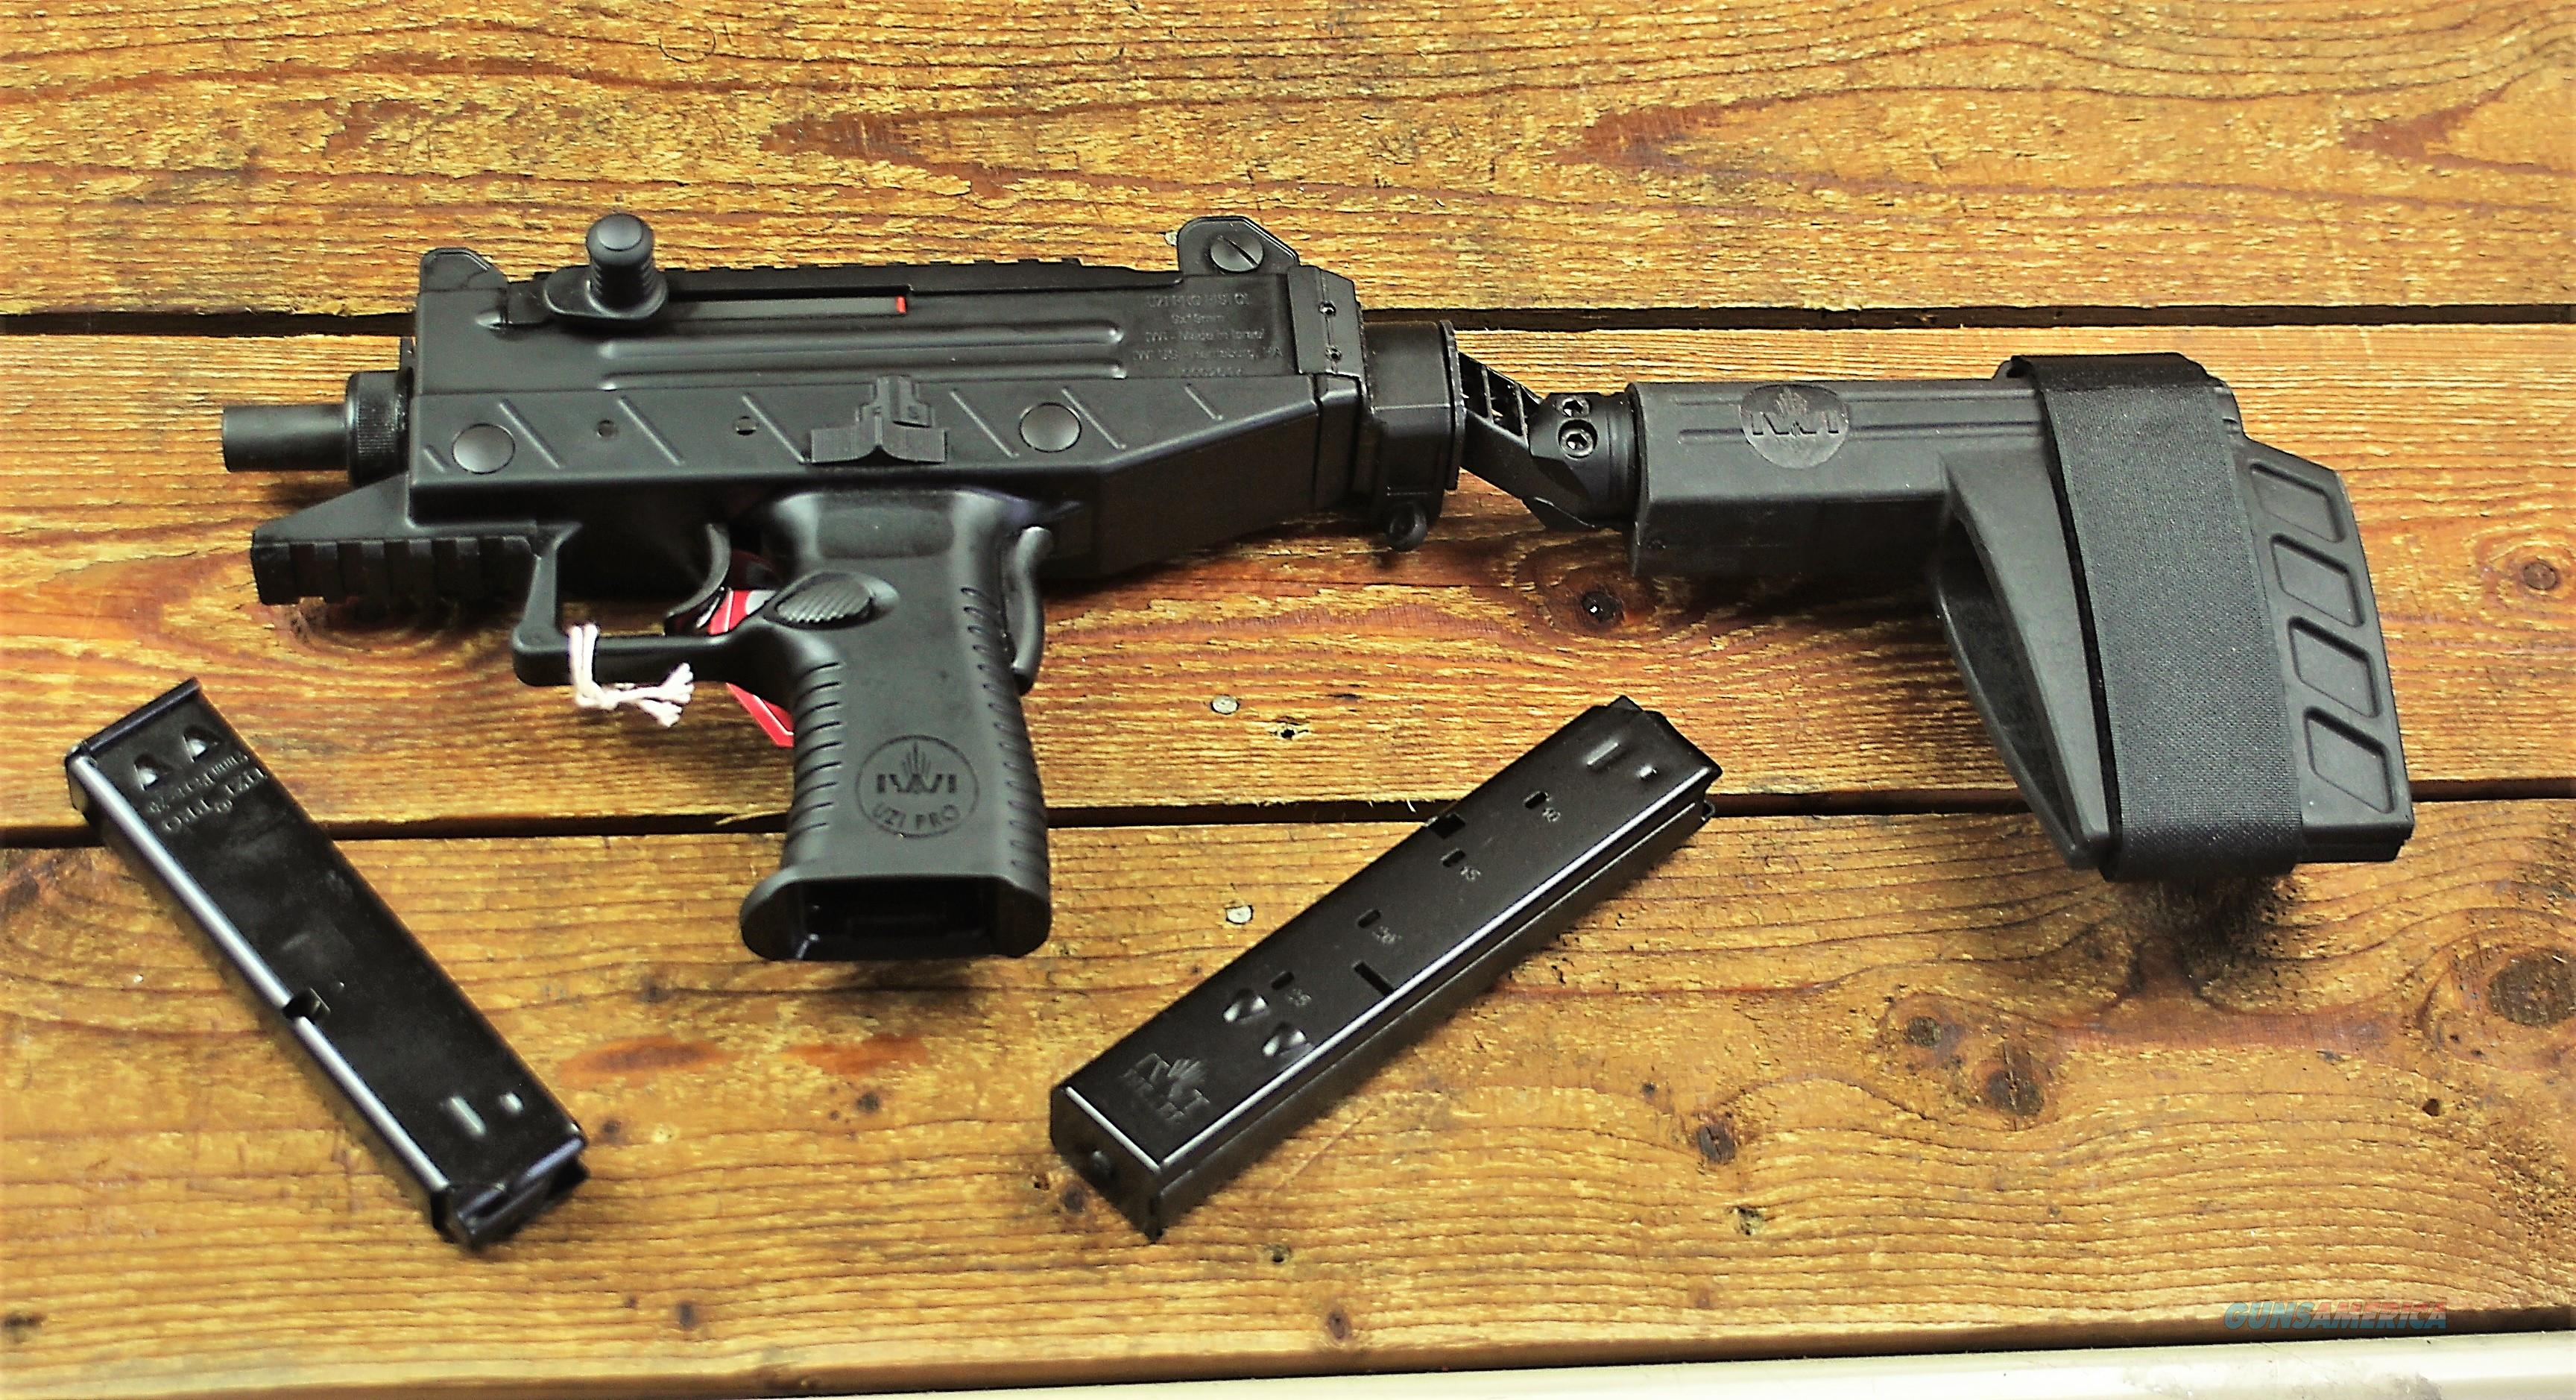 1. EASY PAY  $70 IWI USA Uzi Pro Target Sights submachine gun. Picatinny rail  9mm Luger Side Folding FOLDER Stabilizing Brace  Steel/Polymer Frame  UPP9SB 856304004691   Guns > Pistols > IWI Pistols